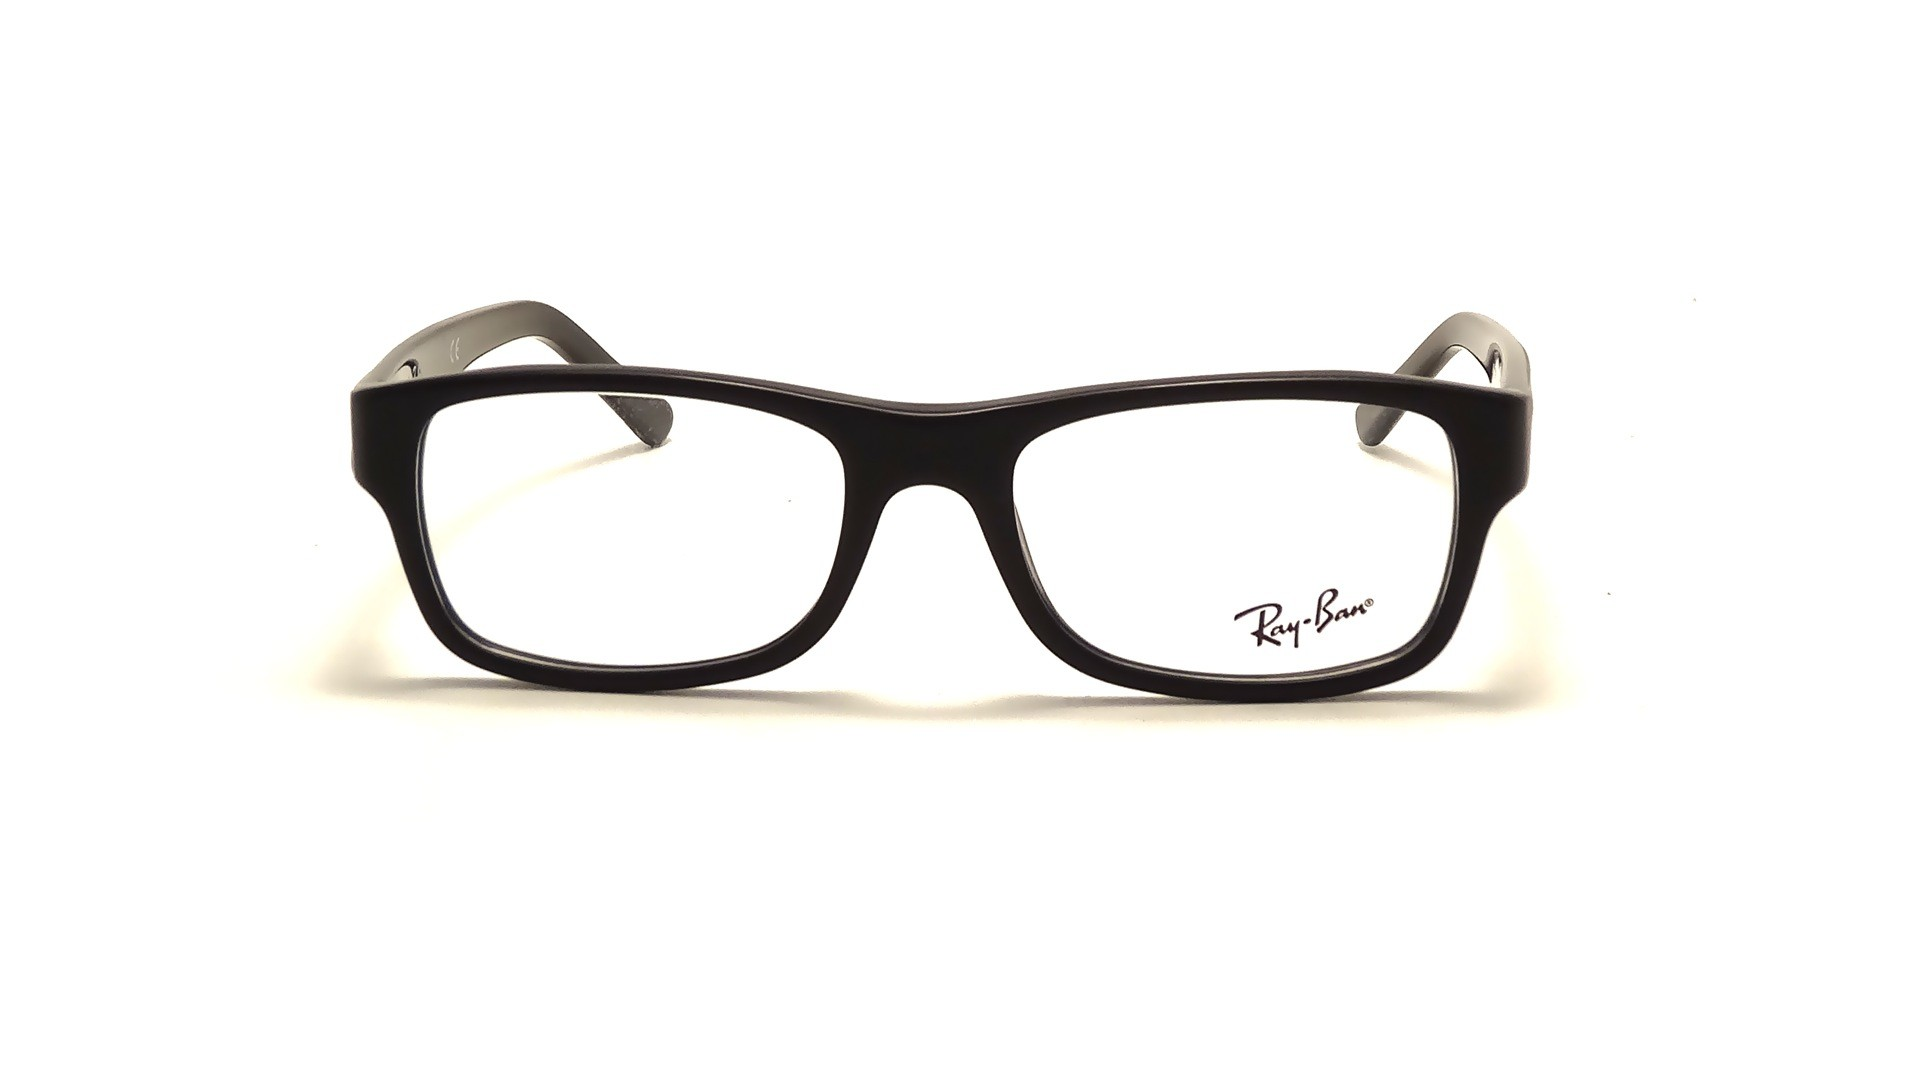 53f8e3199a429 Ray Ban Rx5268 Youngster Eyeglasses « Heritage Malta